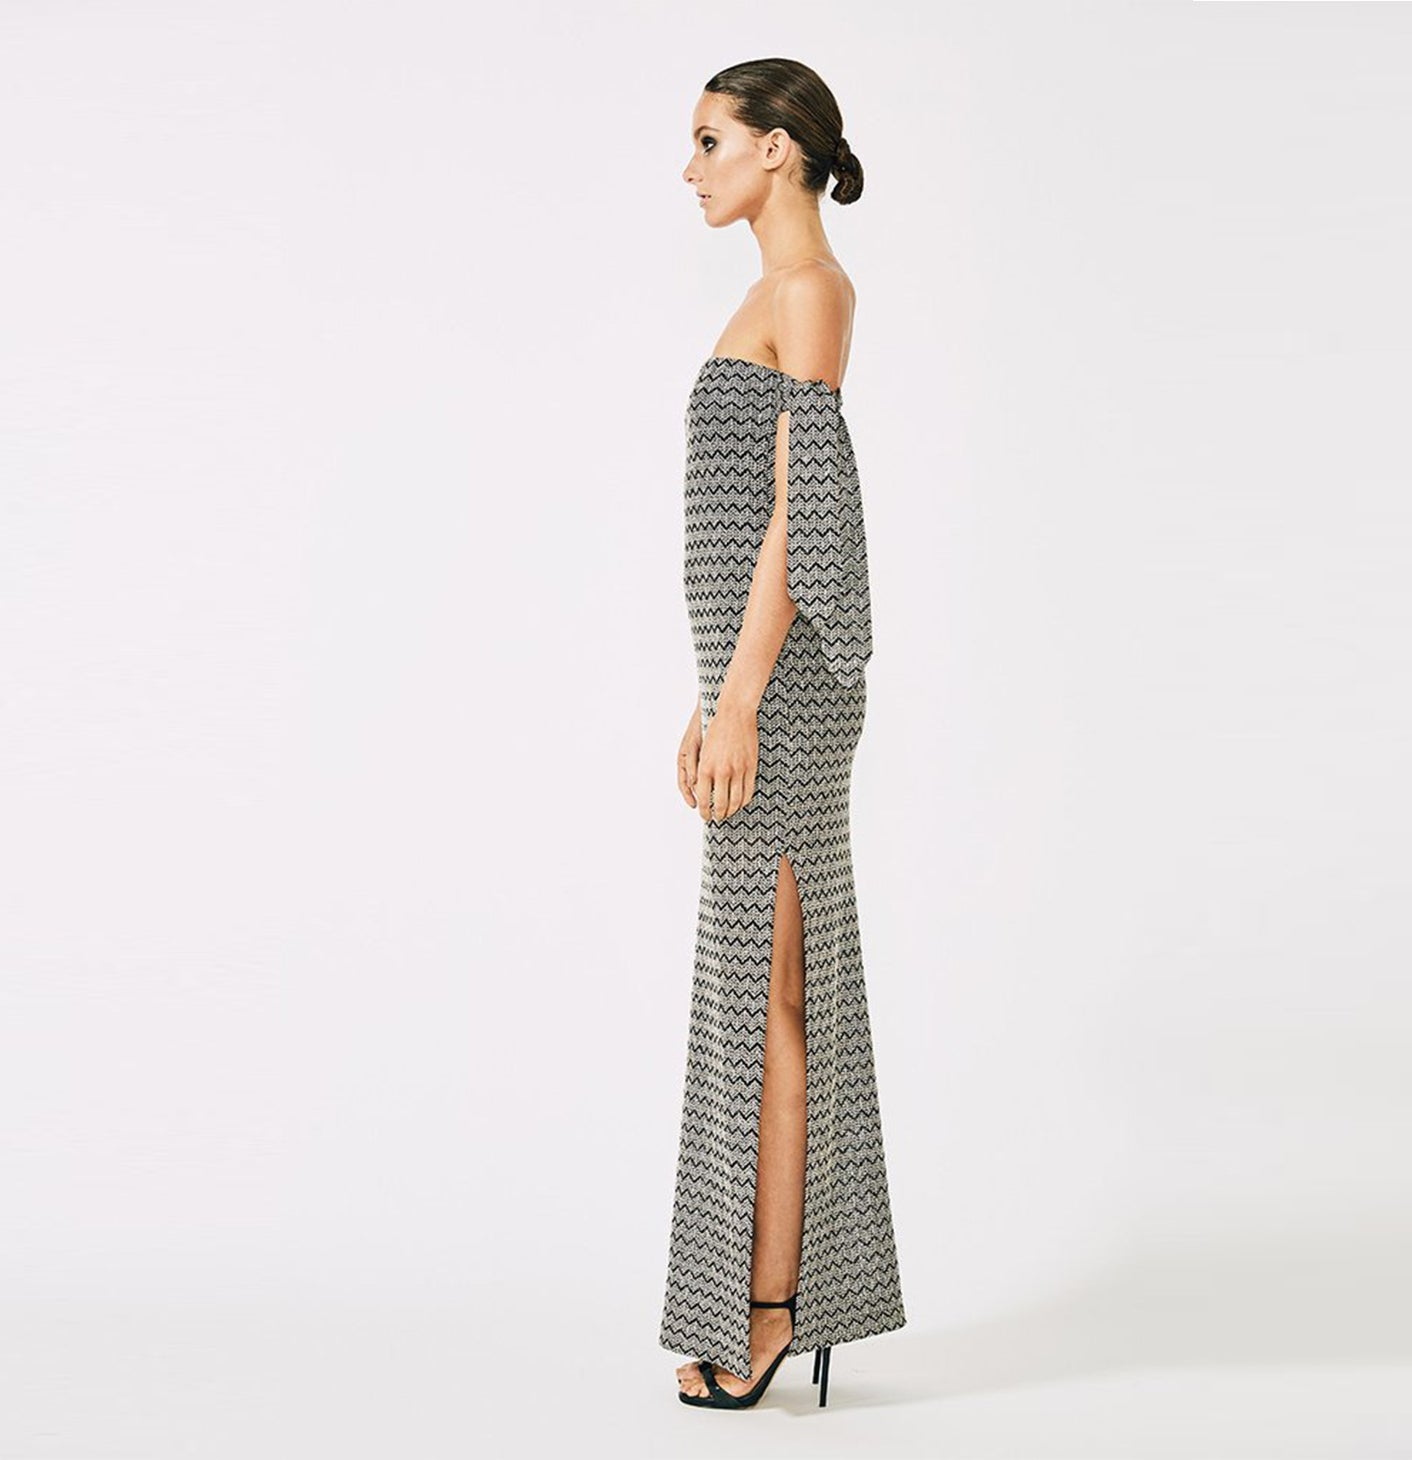 Danglars Strapless Midi Dress with Ties